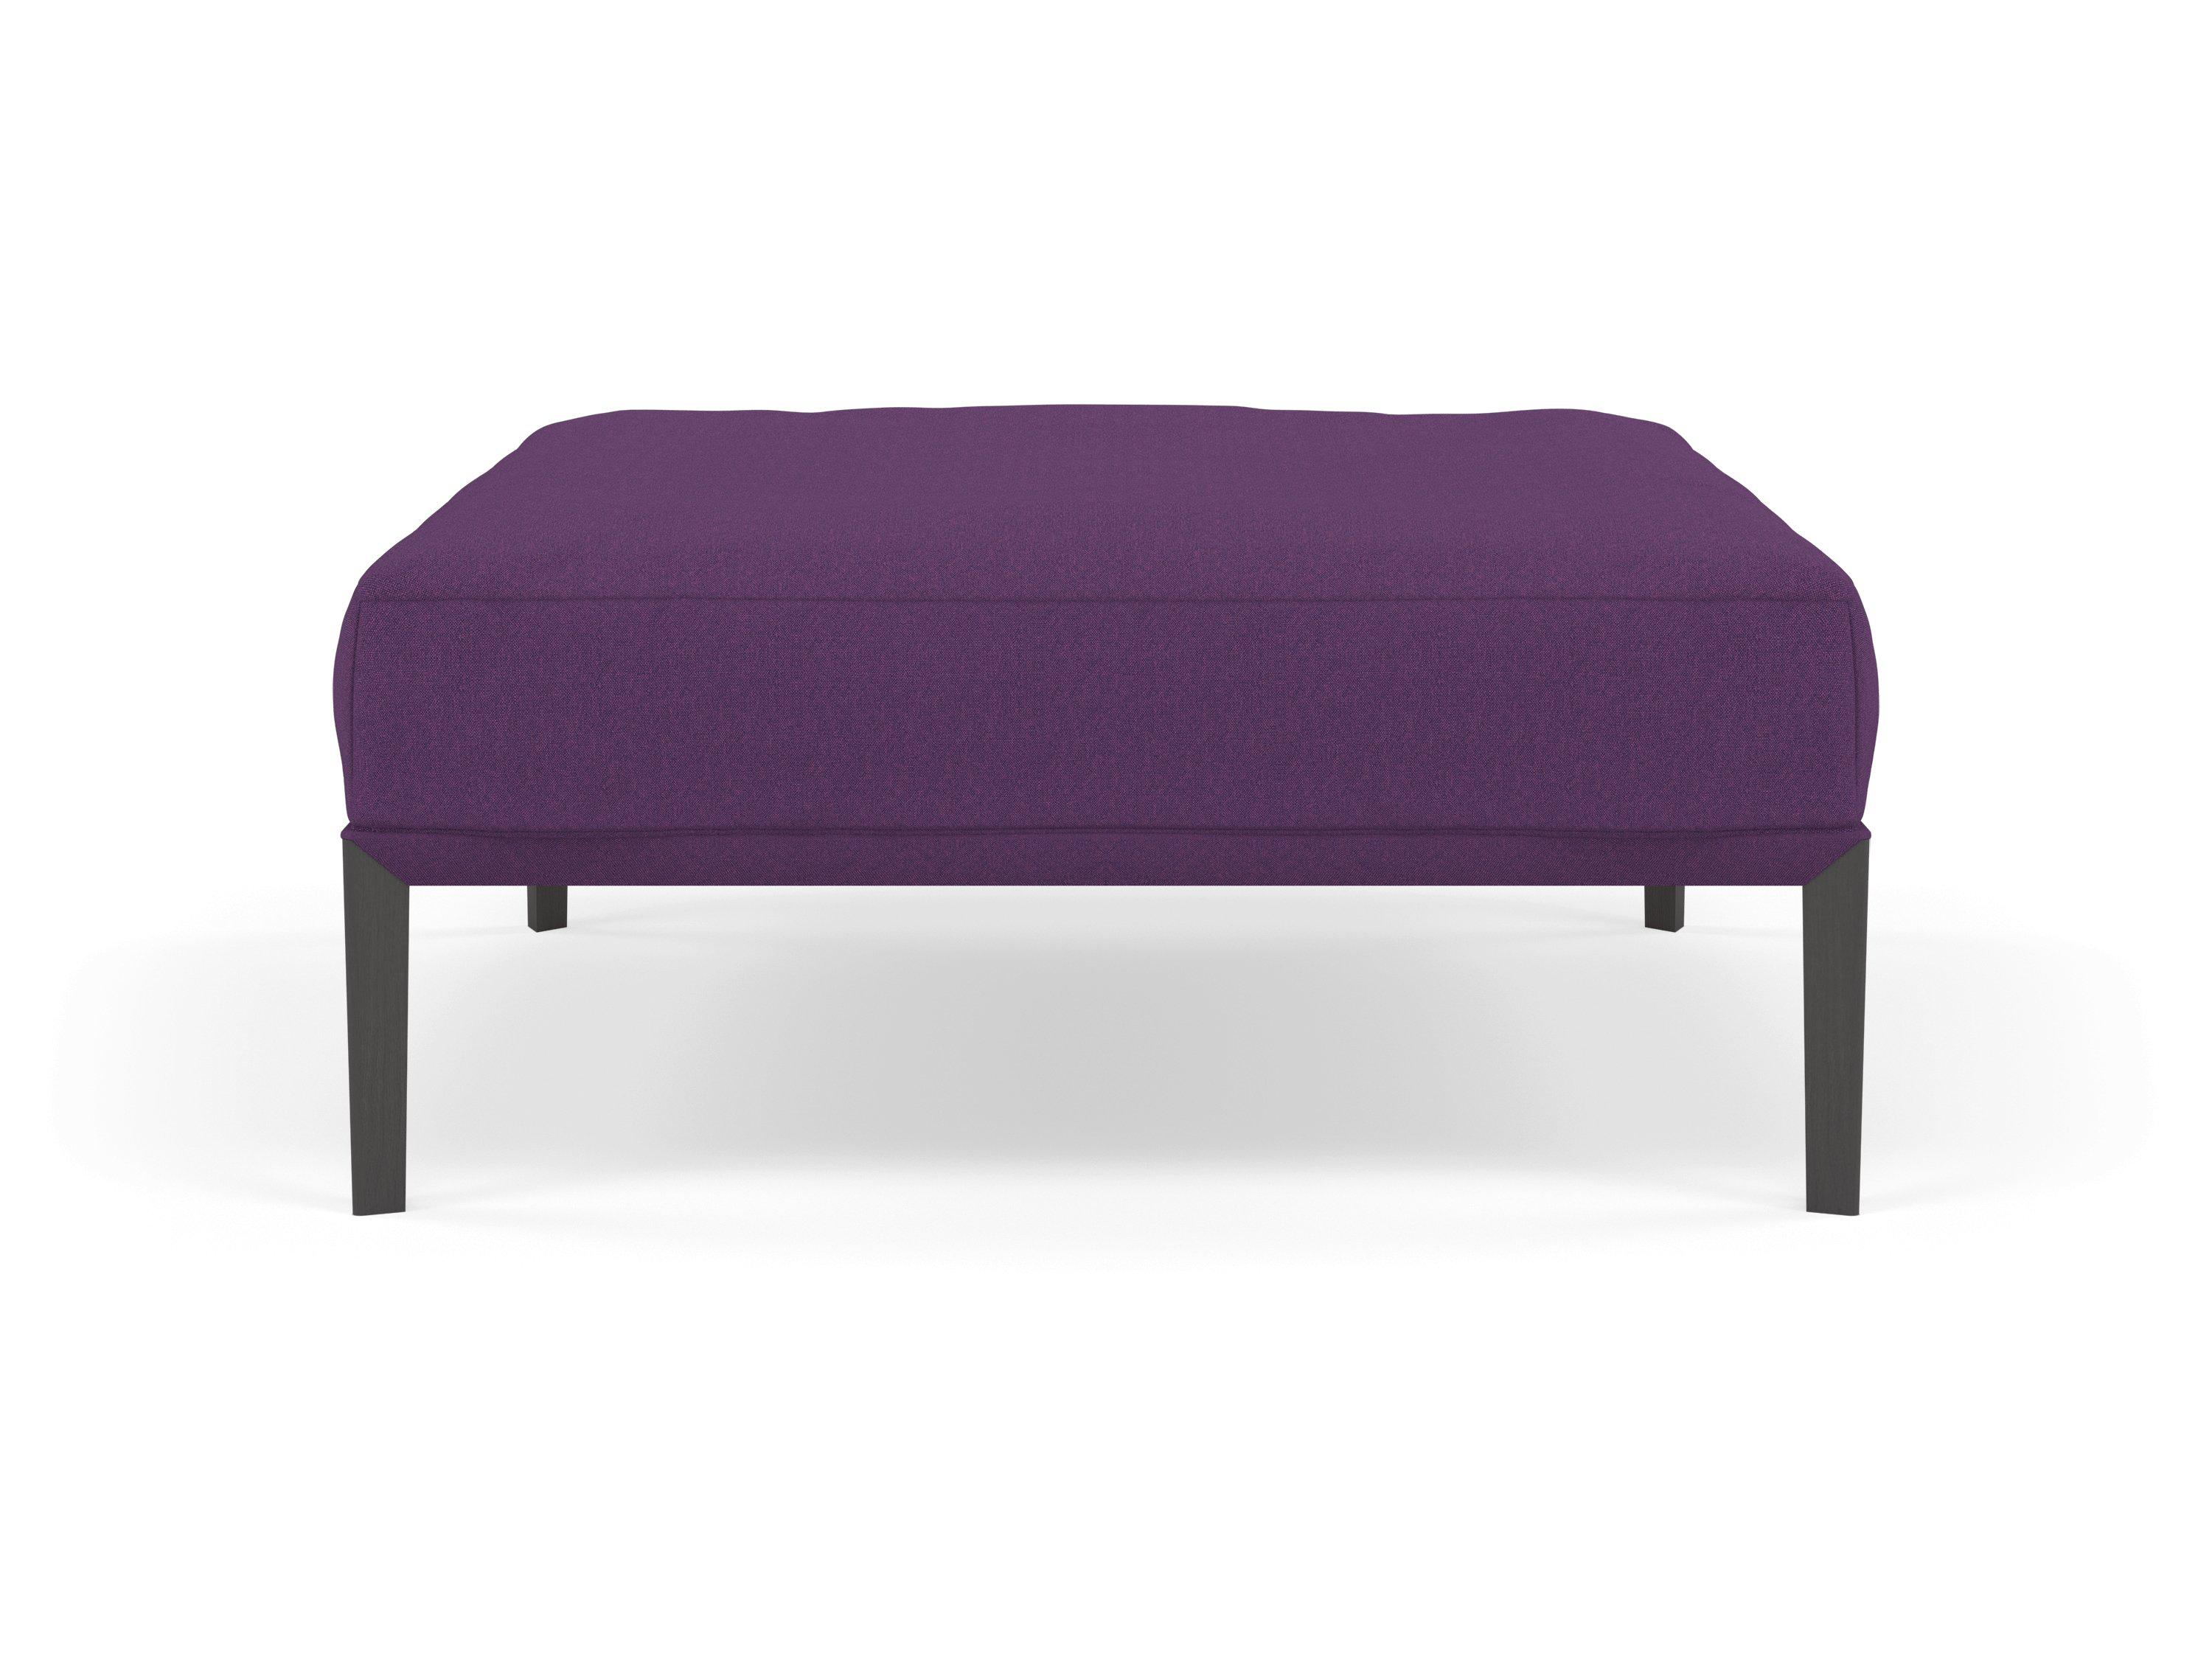 Miraculous Modern Pouffe Footstool Ottoman Square Seat 103X103Cm In Deep Purple Fabric Dailytribune Chair Design For Home Dailytribuneorg